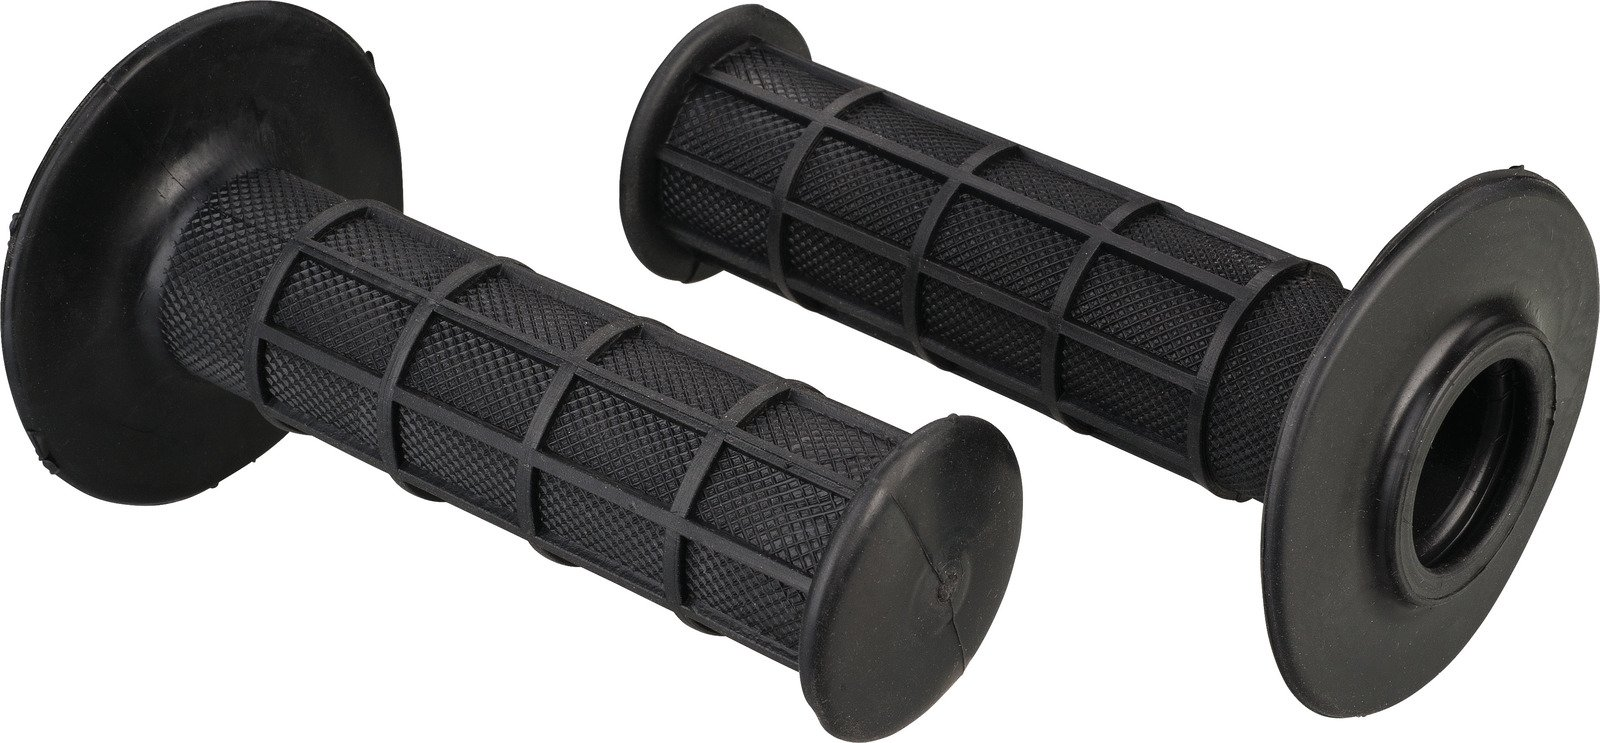 Enduro Handlebar Grip Set For XT500 TT500 SR500 1-064